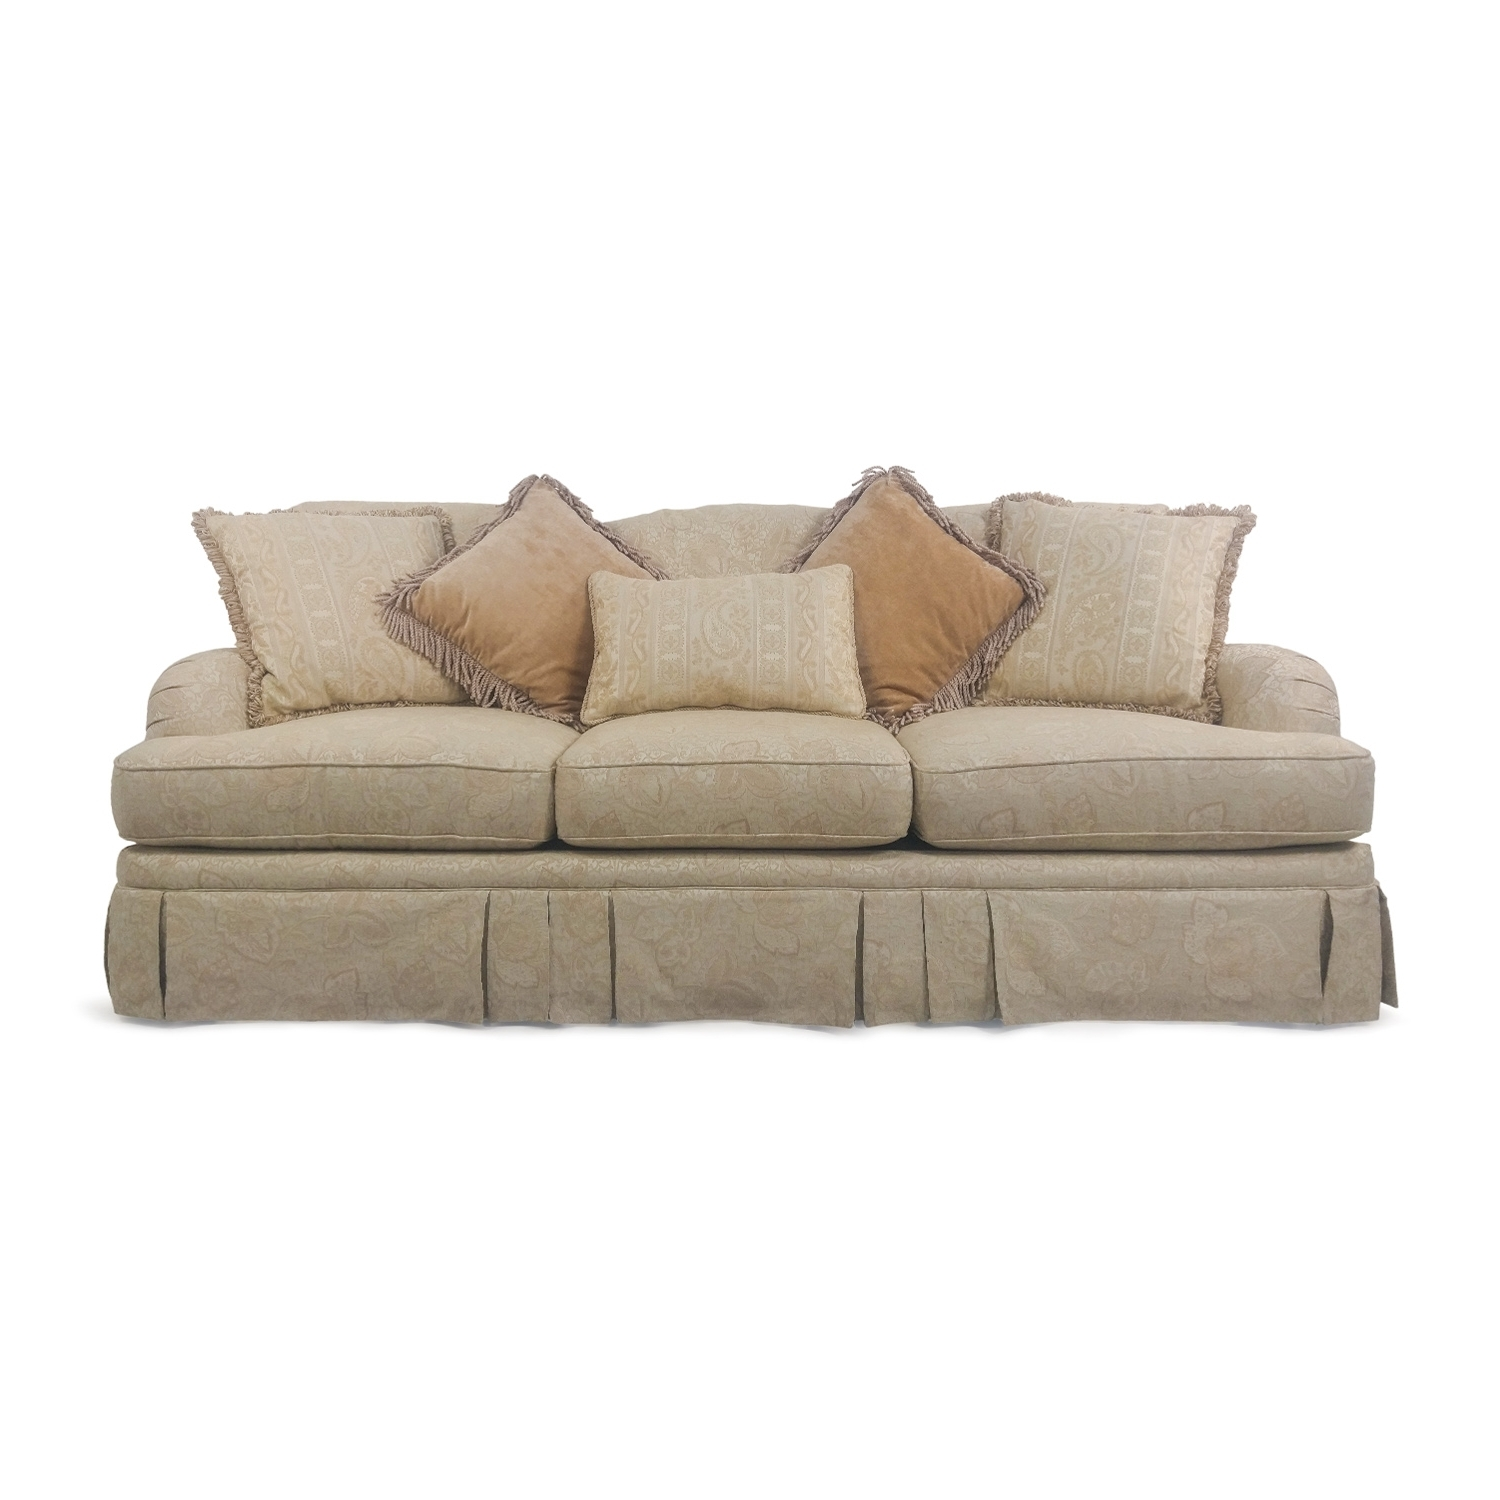 [%84% Off – Thomas Alexander Thomas Alexander Classic Sofa / Sofas Throughout 2017 Classic Sofas|Classic Sofas Throughout Fashionable 84% Off – Thomas Alexander Thomas Alexander Classic Sofa / Sofas|Recent Classic Sofas For 84% Off – Thomas Alexander Thomas Alexander Classic Sofa / Sofas|Recent 84% Off – Thomas Alexander Thomas Alexander Classic Sofa / Sofas Inside Classic Sofas%] (View 1 of 15)